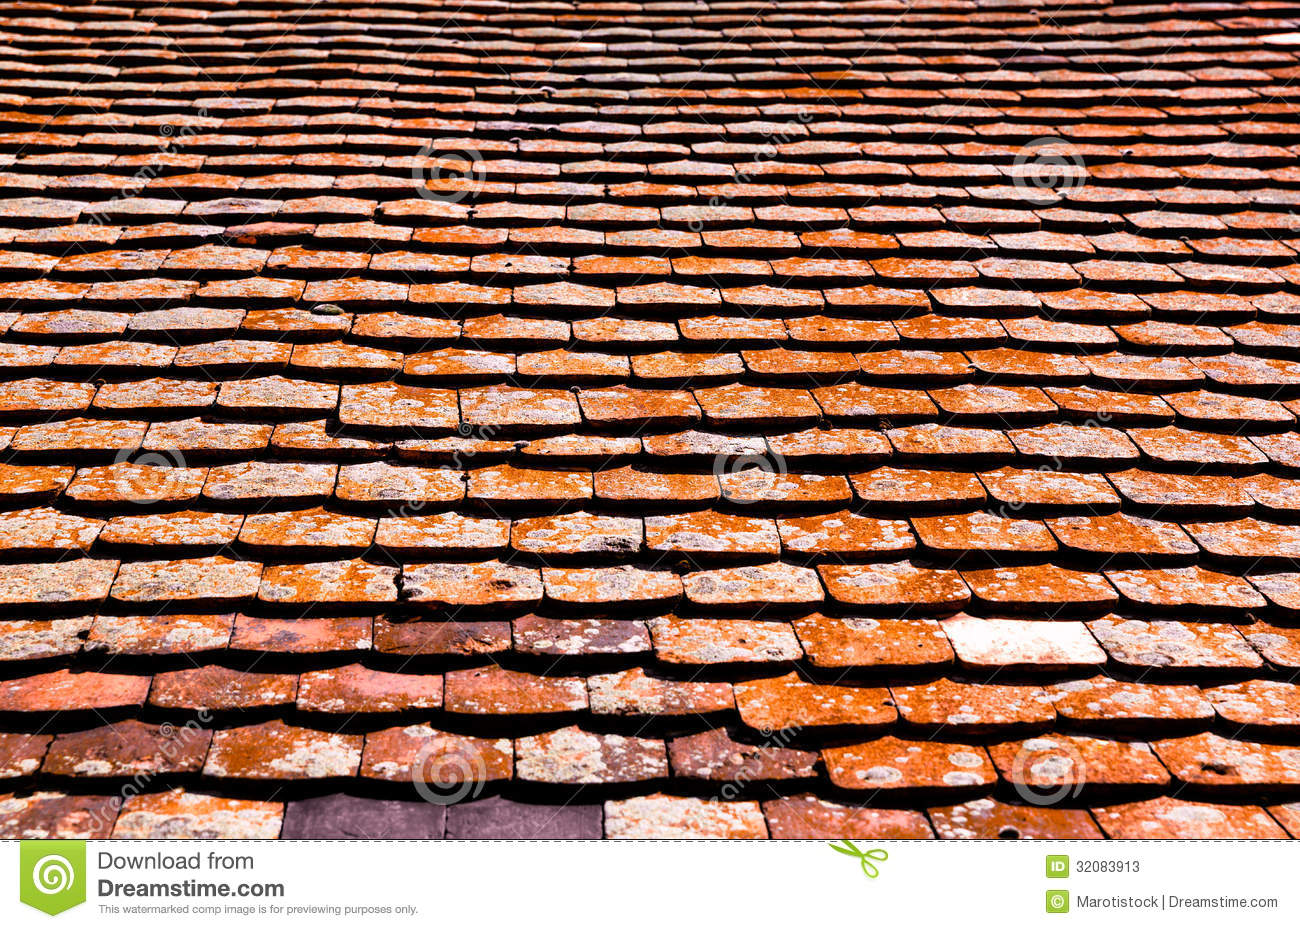 Royalty Free Stock Photo. Download Old Red Roof Tiles ...